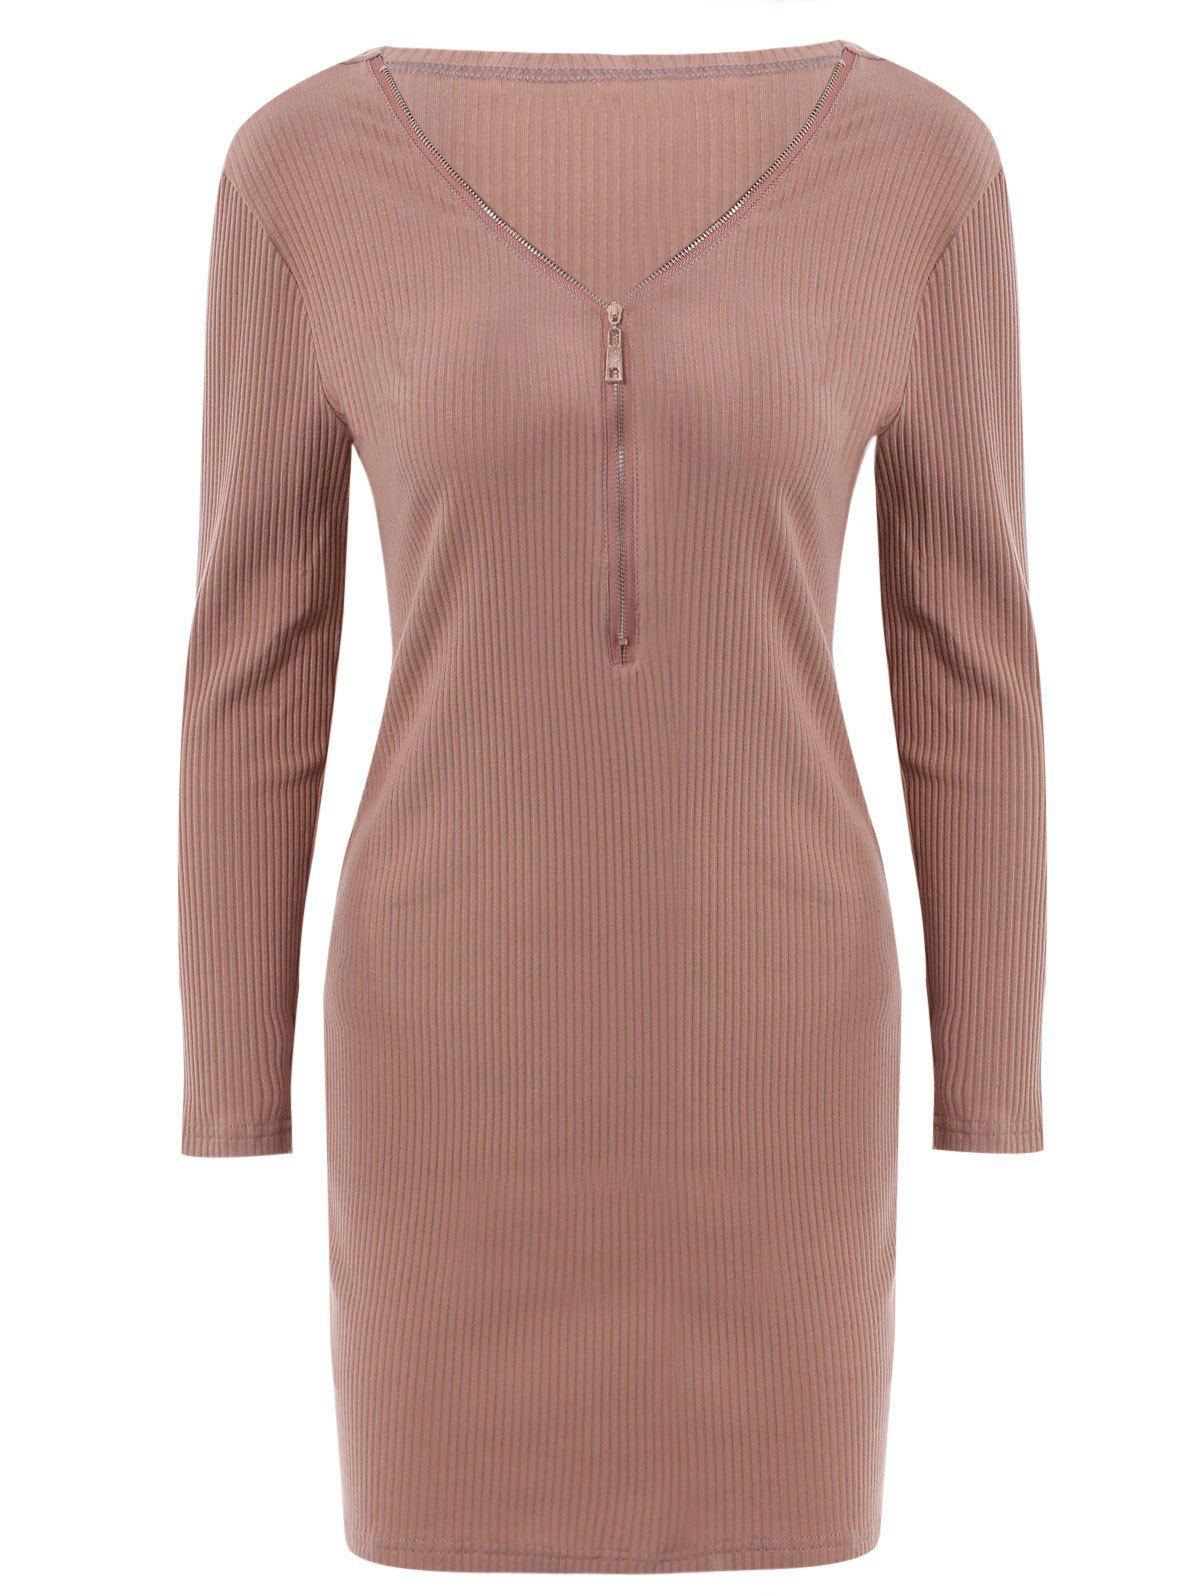 Alluring Women's V-Neck Candy Color Long Sleeve Dress - BROWN M